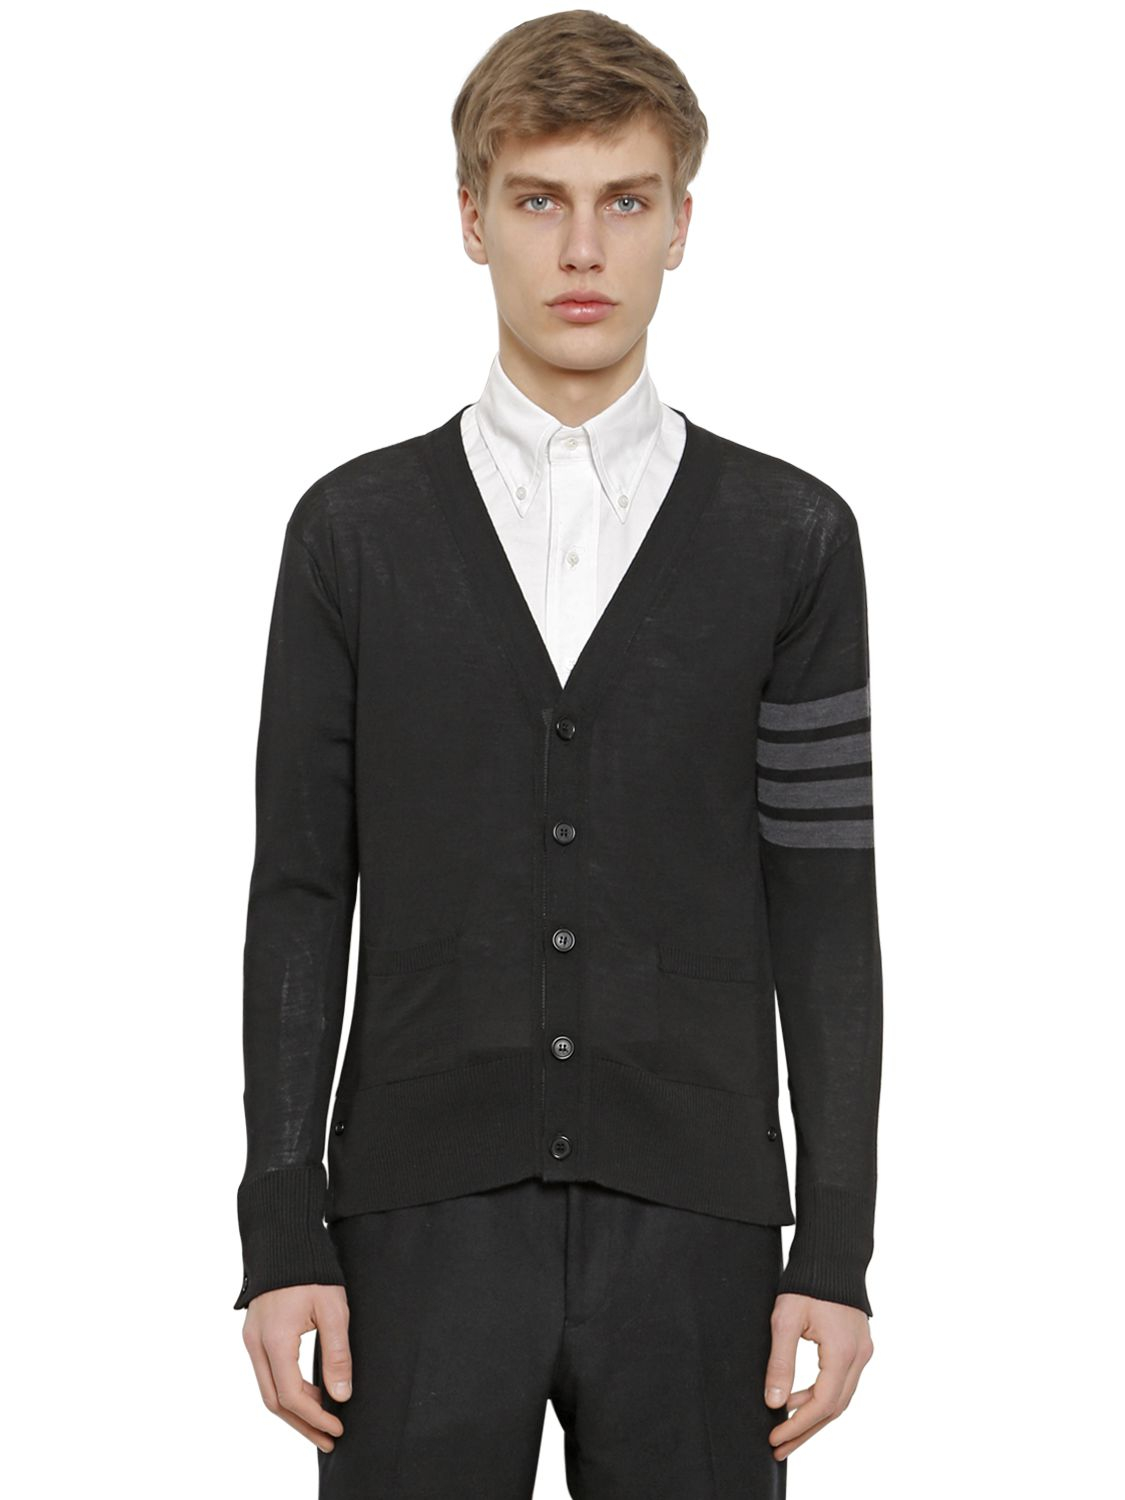 Thom browne Striped Merino Wool Cardigan in Black for Men | Lyst